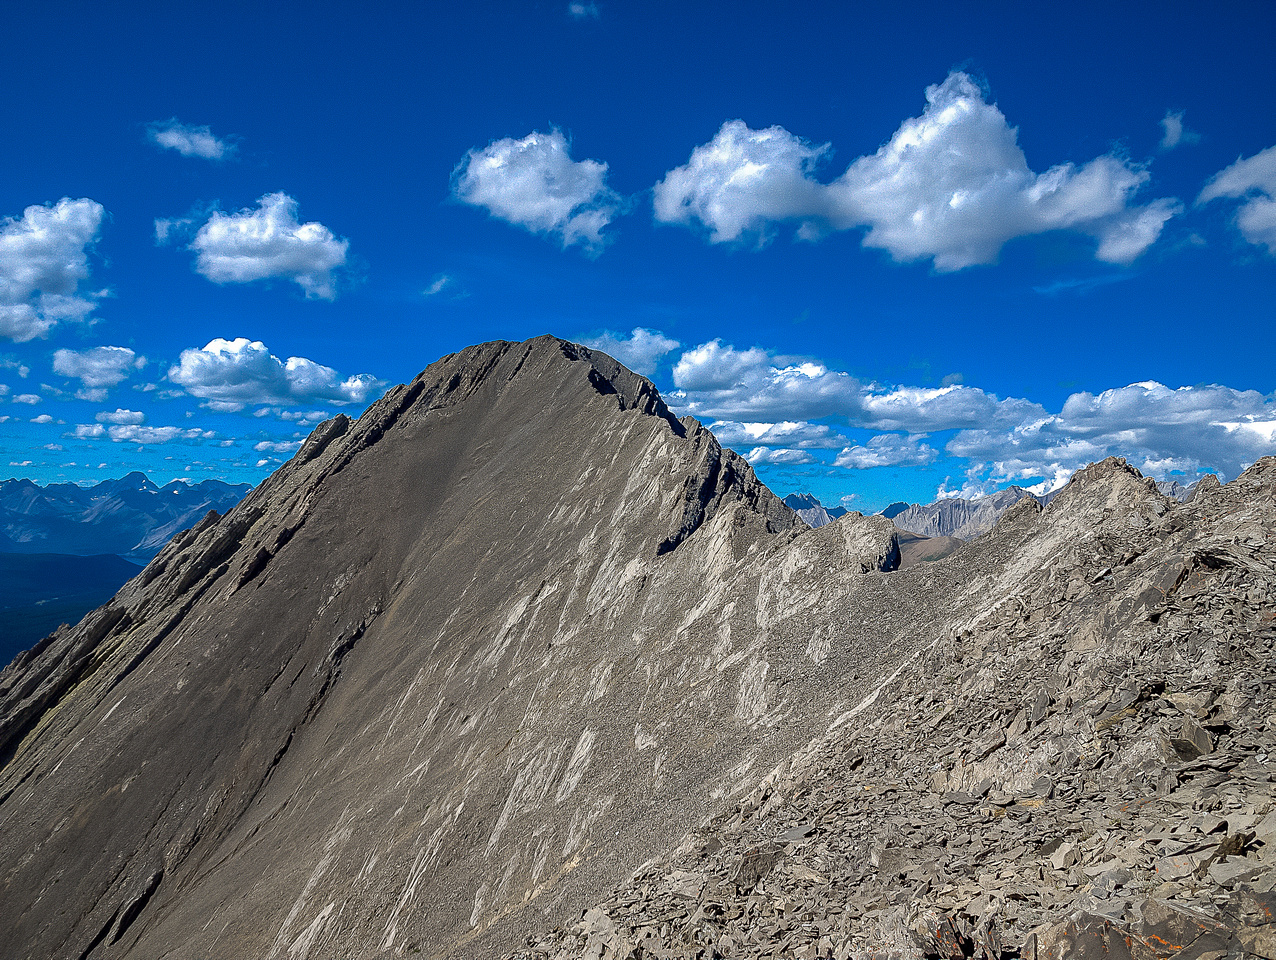 Off the east face, looking towards the summit of Storelk.